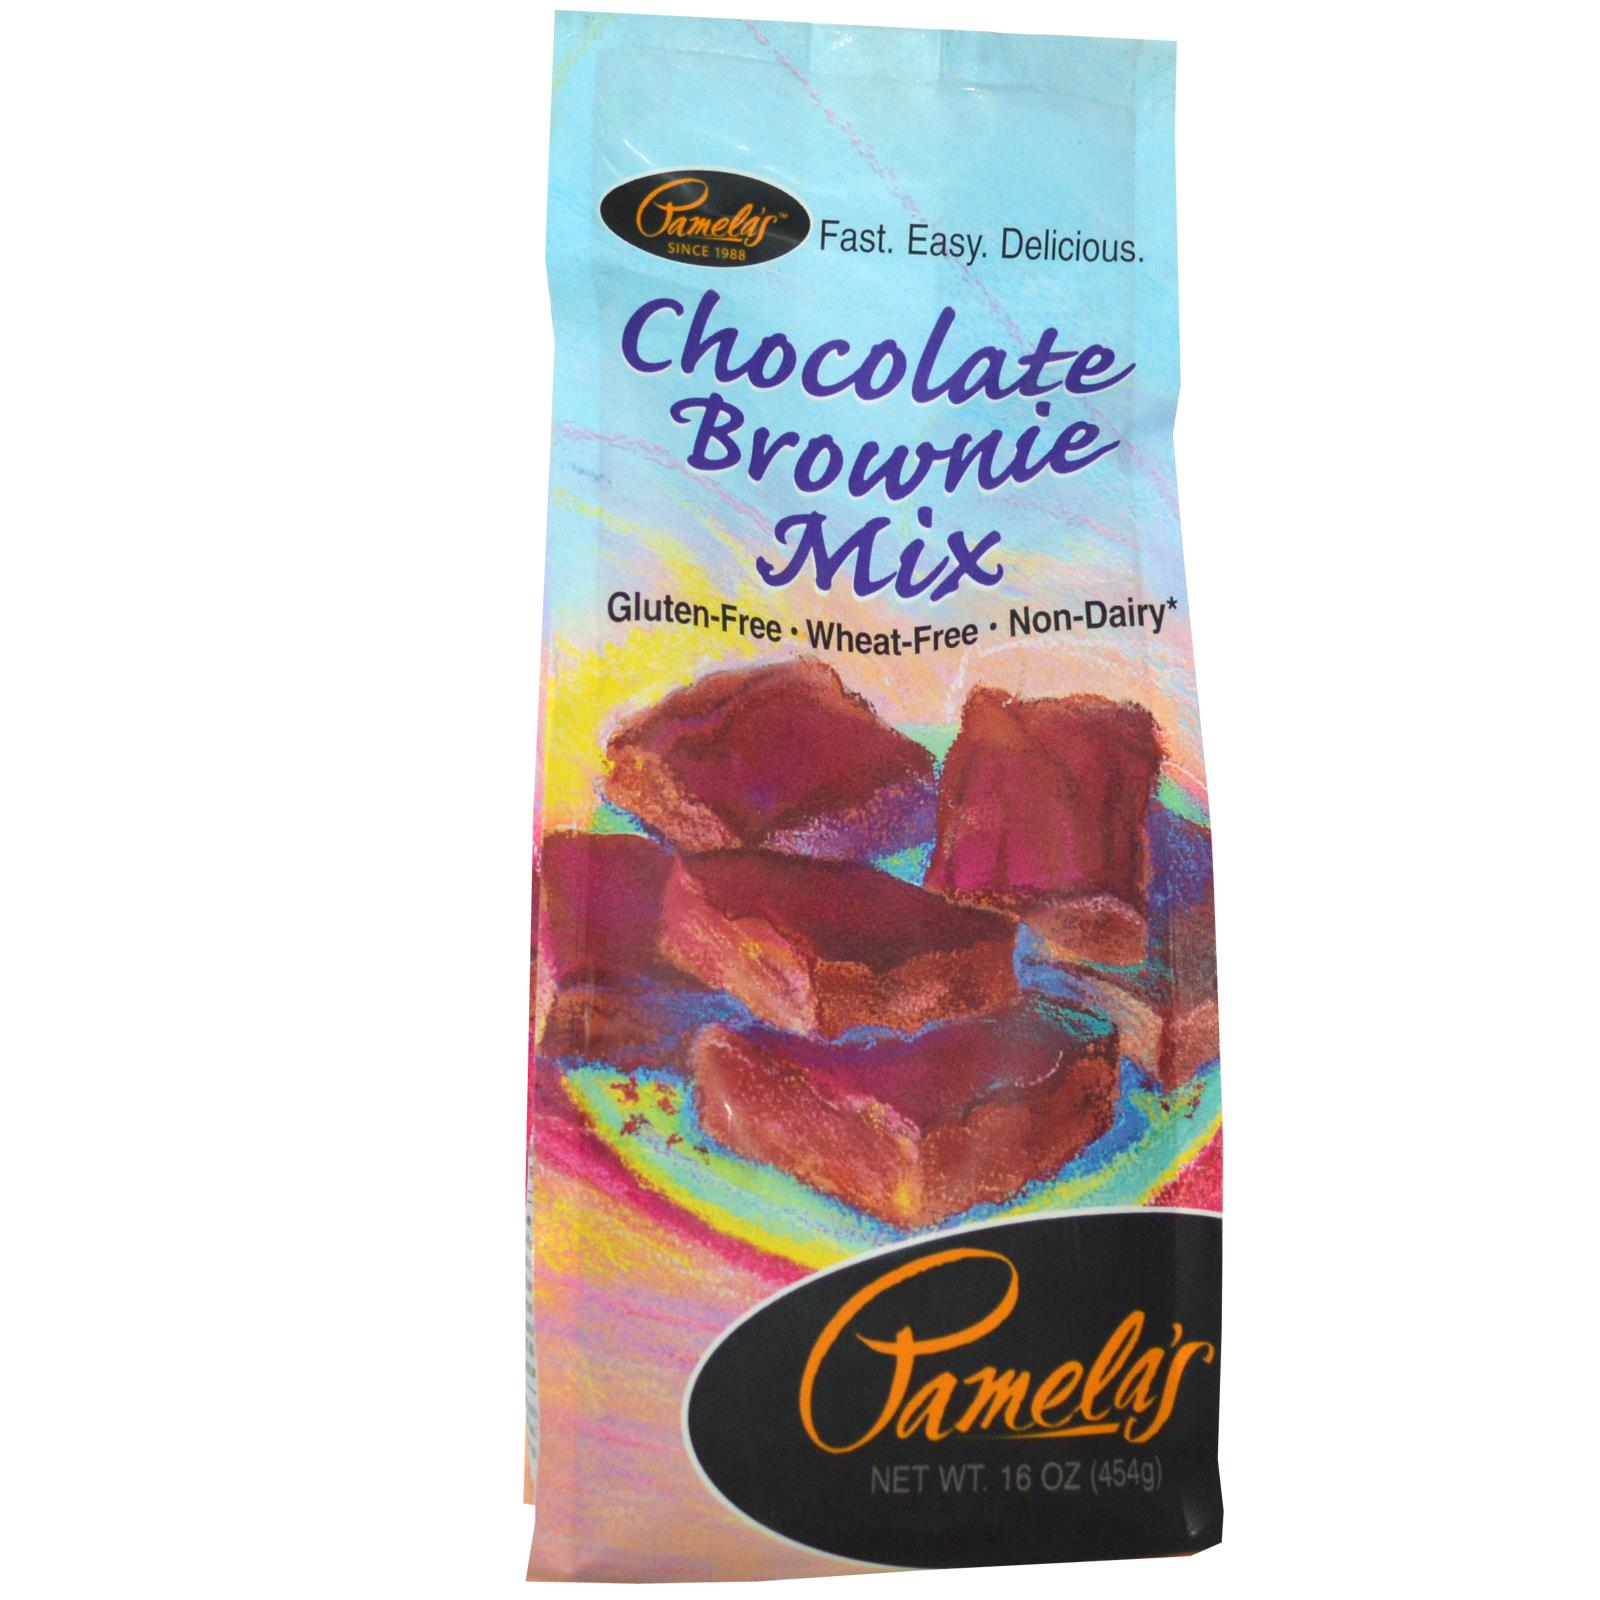 Pamelas Chocolate Brownie Mix.jpg